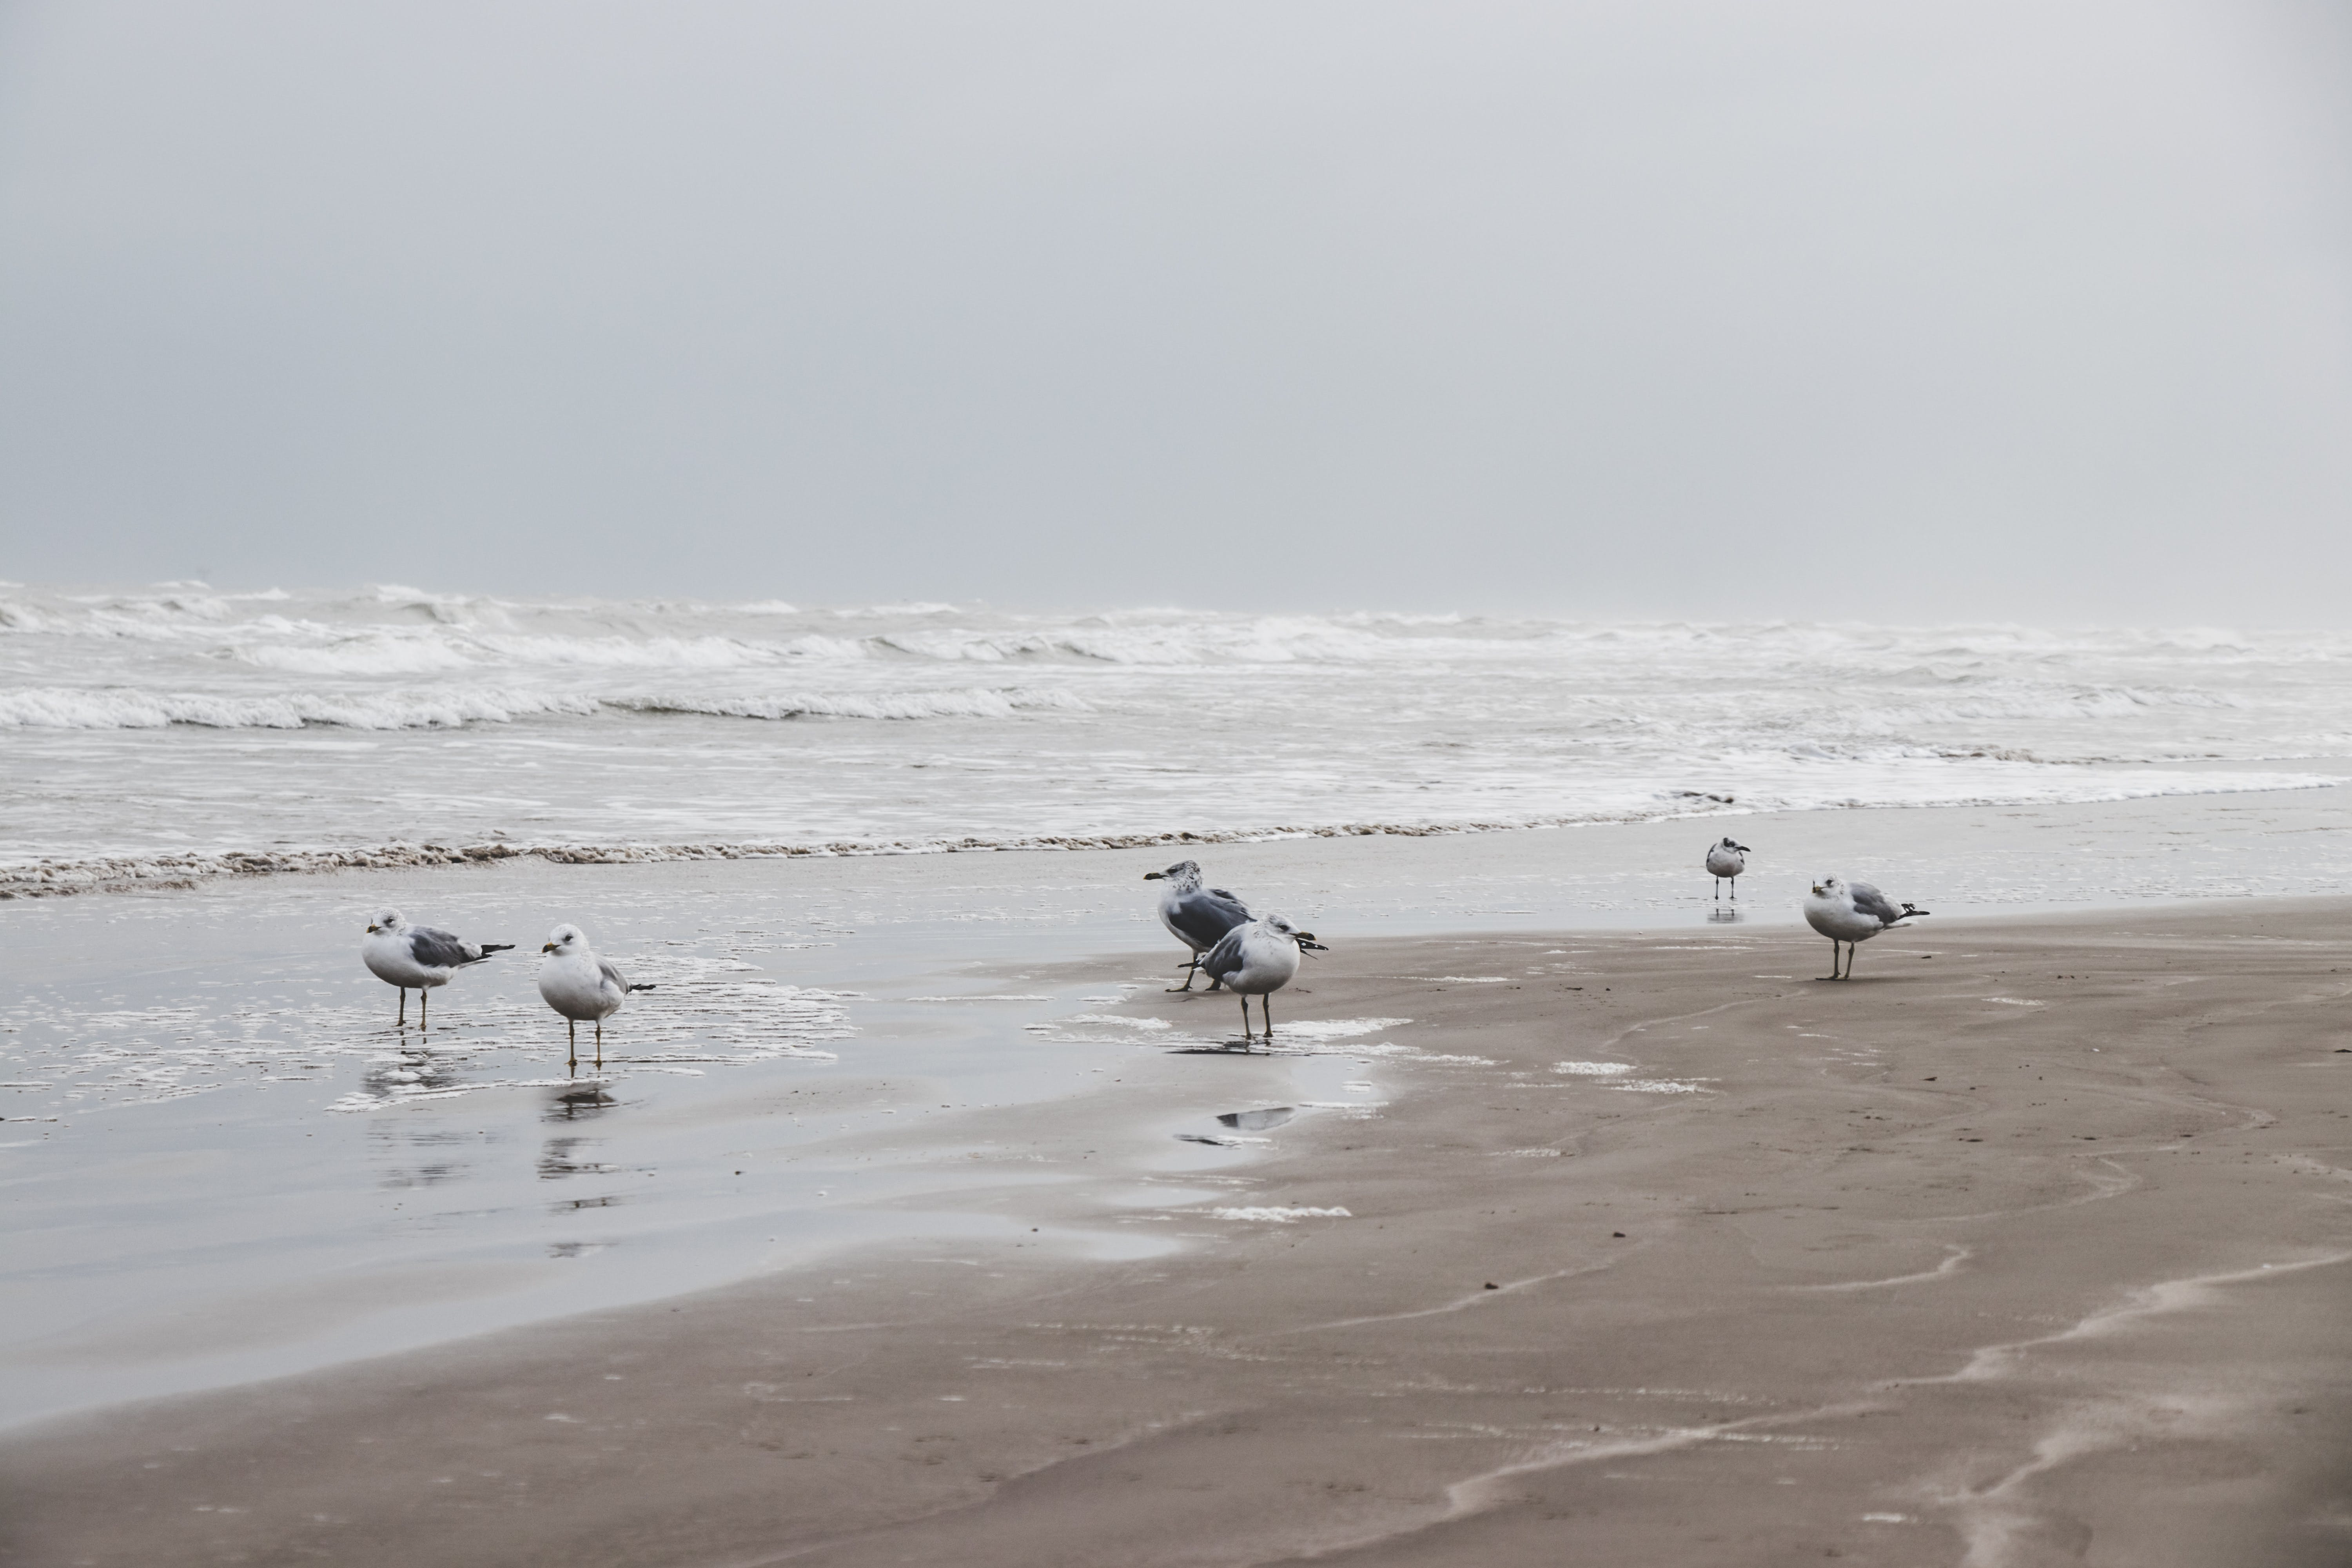 Photography of Seagulls on Seashore